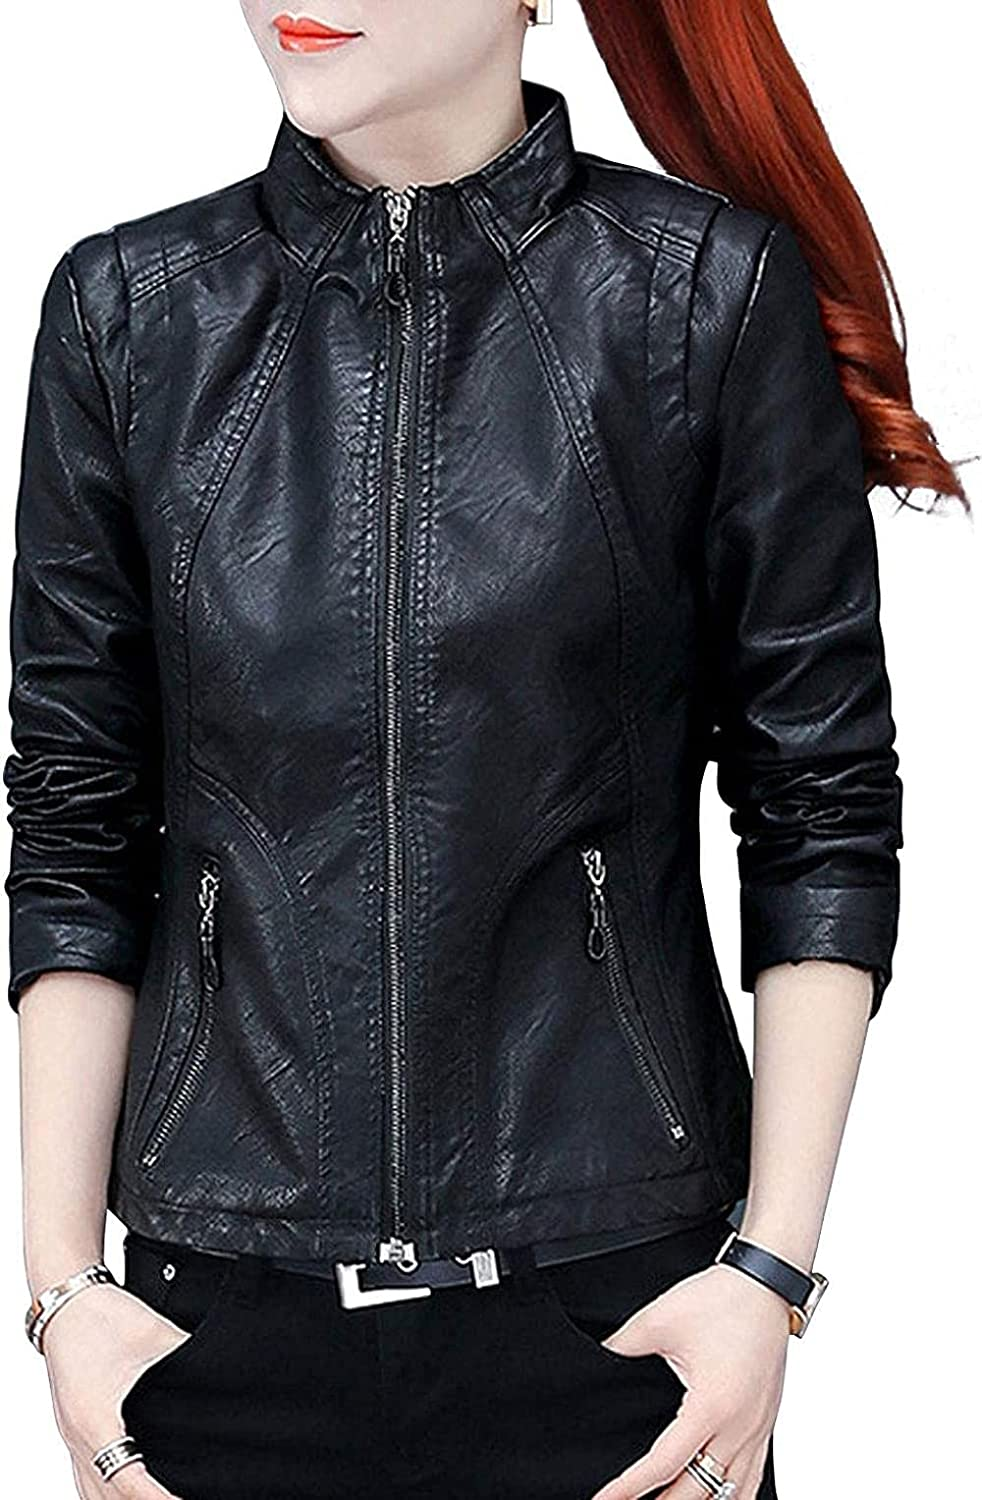 Women's Stand Collar Zip Front Bike Slim Motorcycle Faux Leather Complete Free Shipping Max 87% OFF